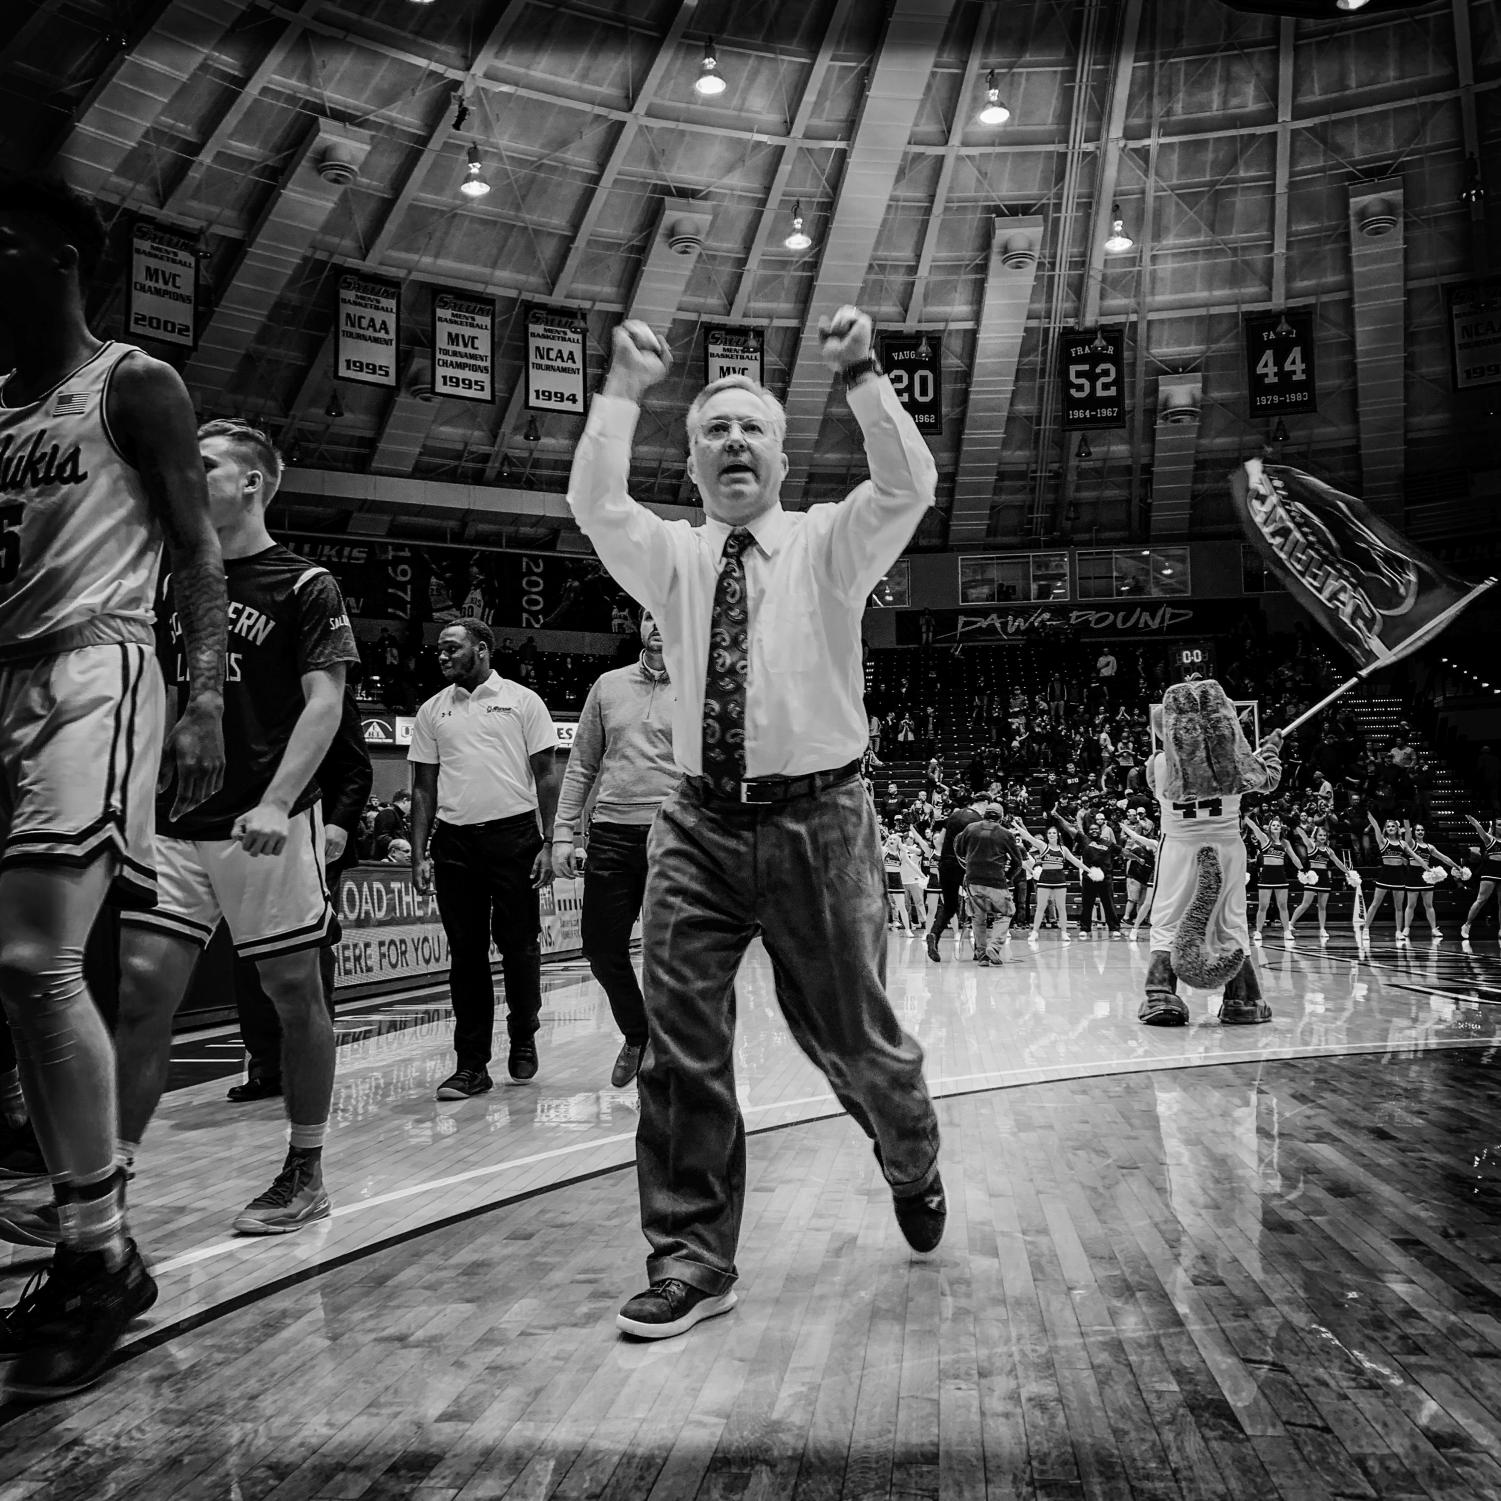 Barry+Hinson%2C+head+men%27s+basketball+coach%2C+celebrates+after+Southern+Illinois+Salukis%27+63-53+win+against+the+Loyola+Ramblers+on+Sunday%2C+Feb.+24%2C+2019+at+SIU+Arena.+The+images+in+this+collage+were+taken+with+an+iPhone+XS+Max+and+processed+in+Hipstamatic.